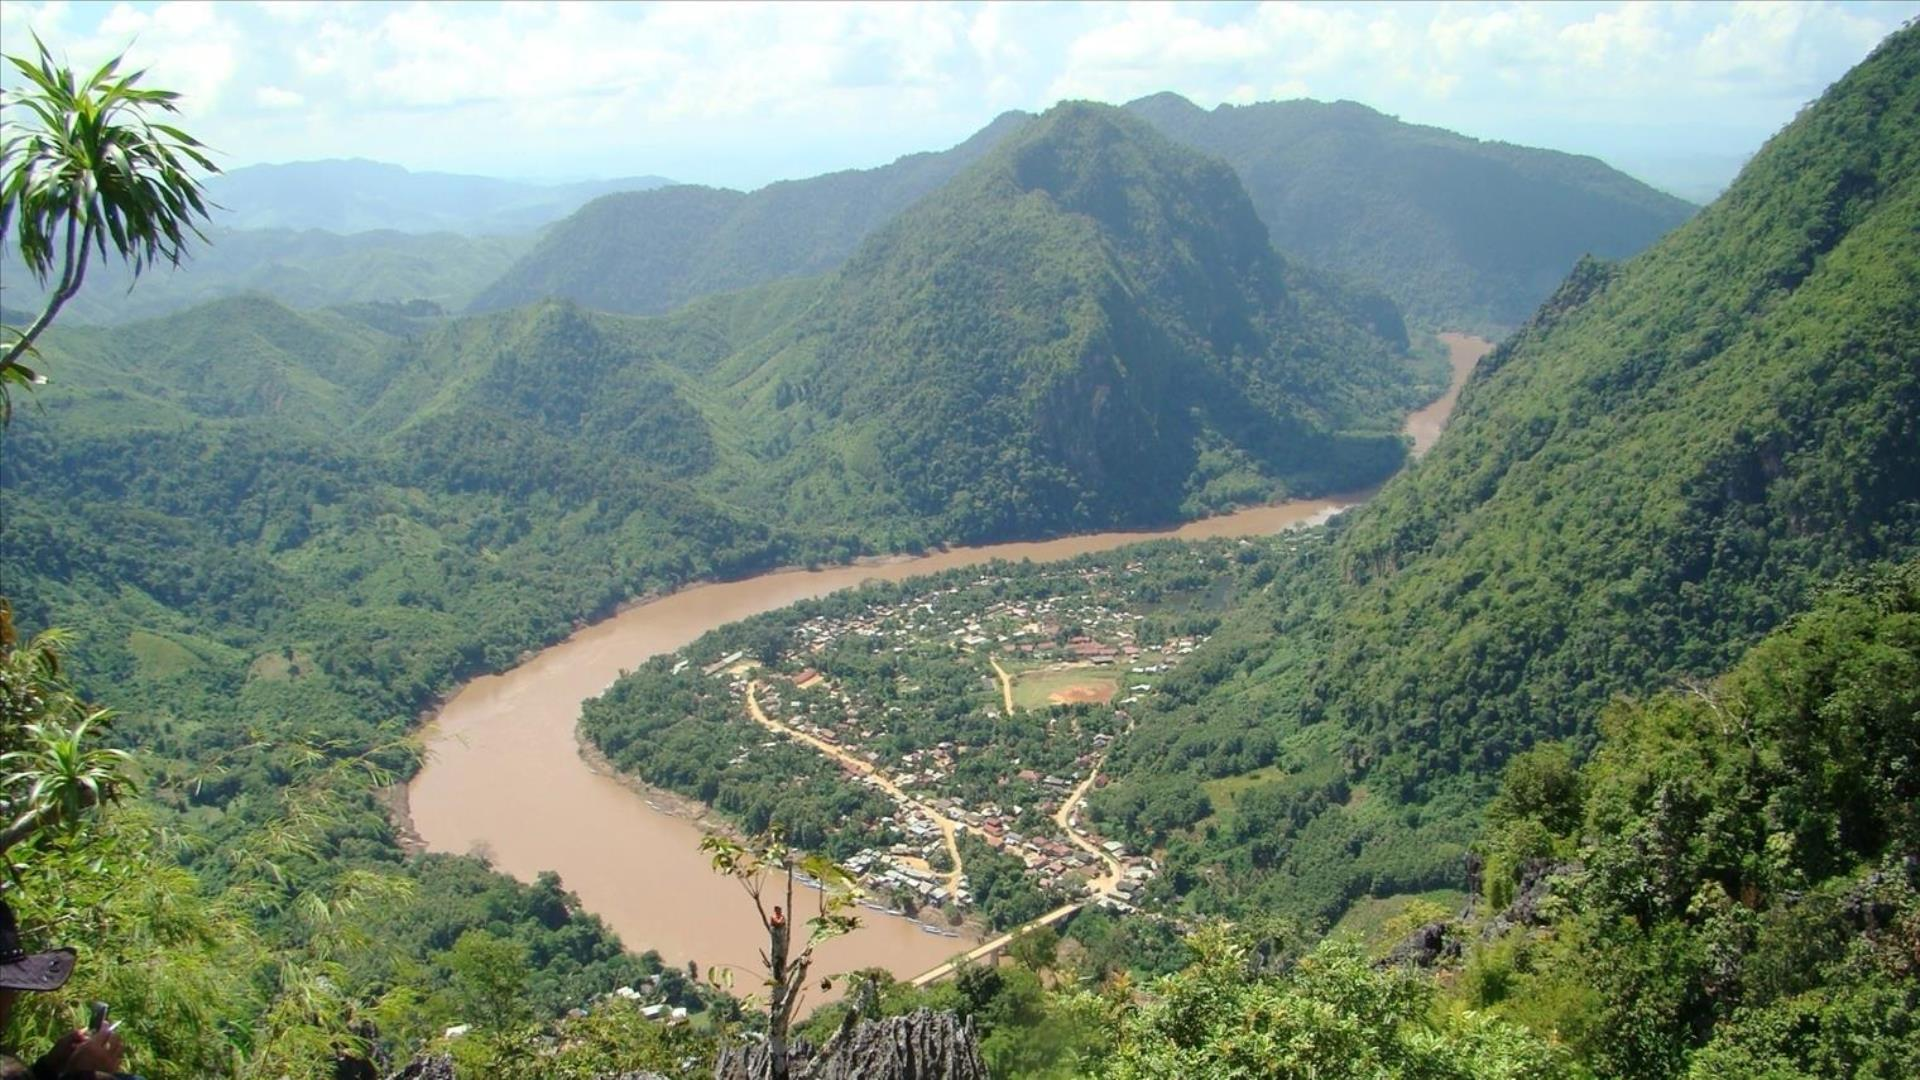 Laos, Luang Prabang – Nong Khiaw: Bike, Trek, Kayak, Caves, Waterfall, Hilltribe, & River Explorer - 5 Days | Ultimate Active Northern Laos Adventure